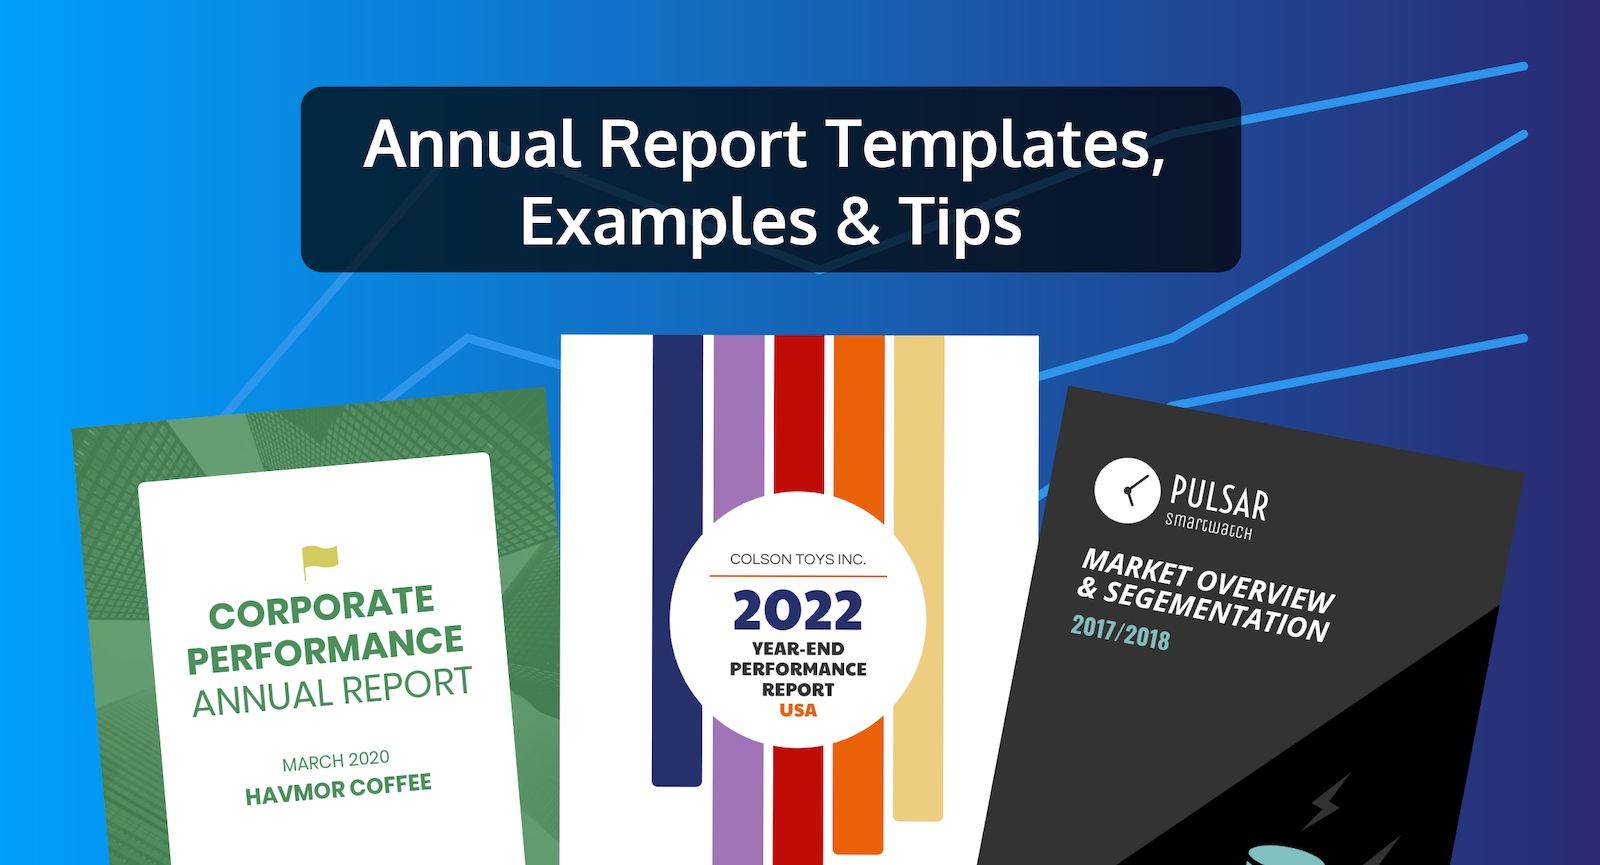 50+ Customizable Annual Report Design Templates, Examples & Tips